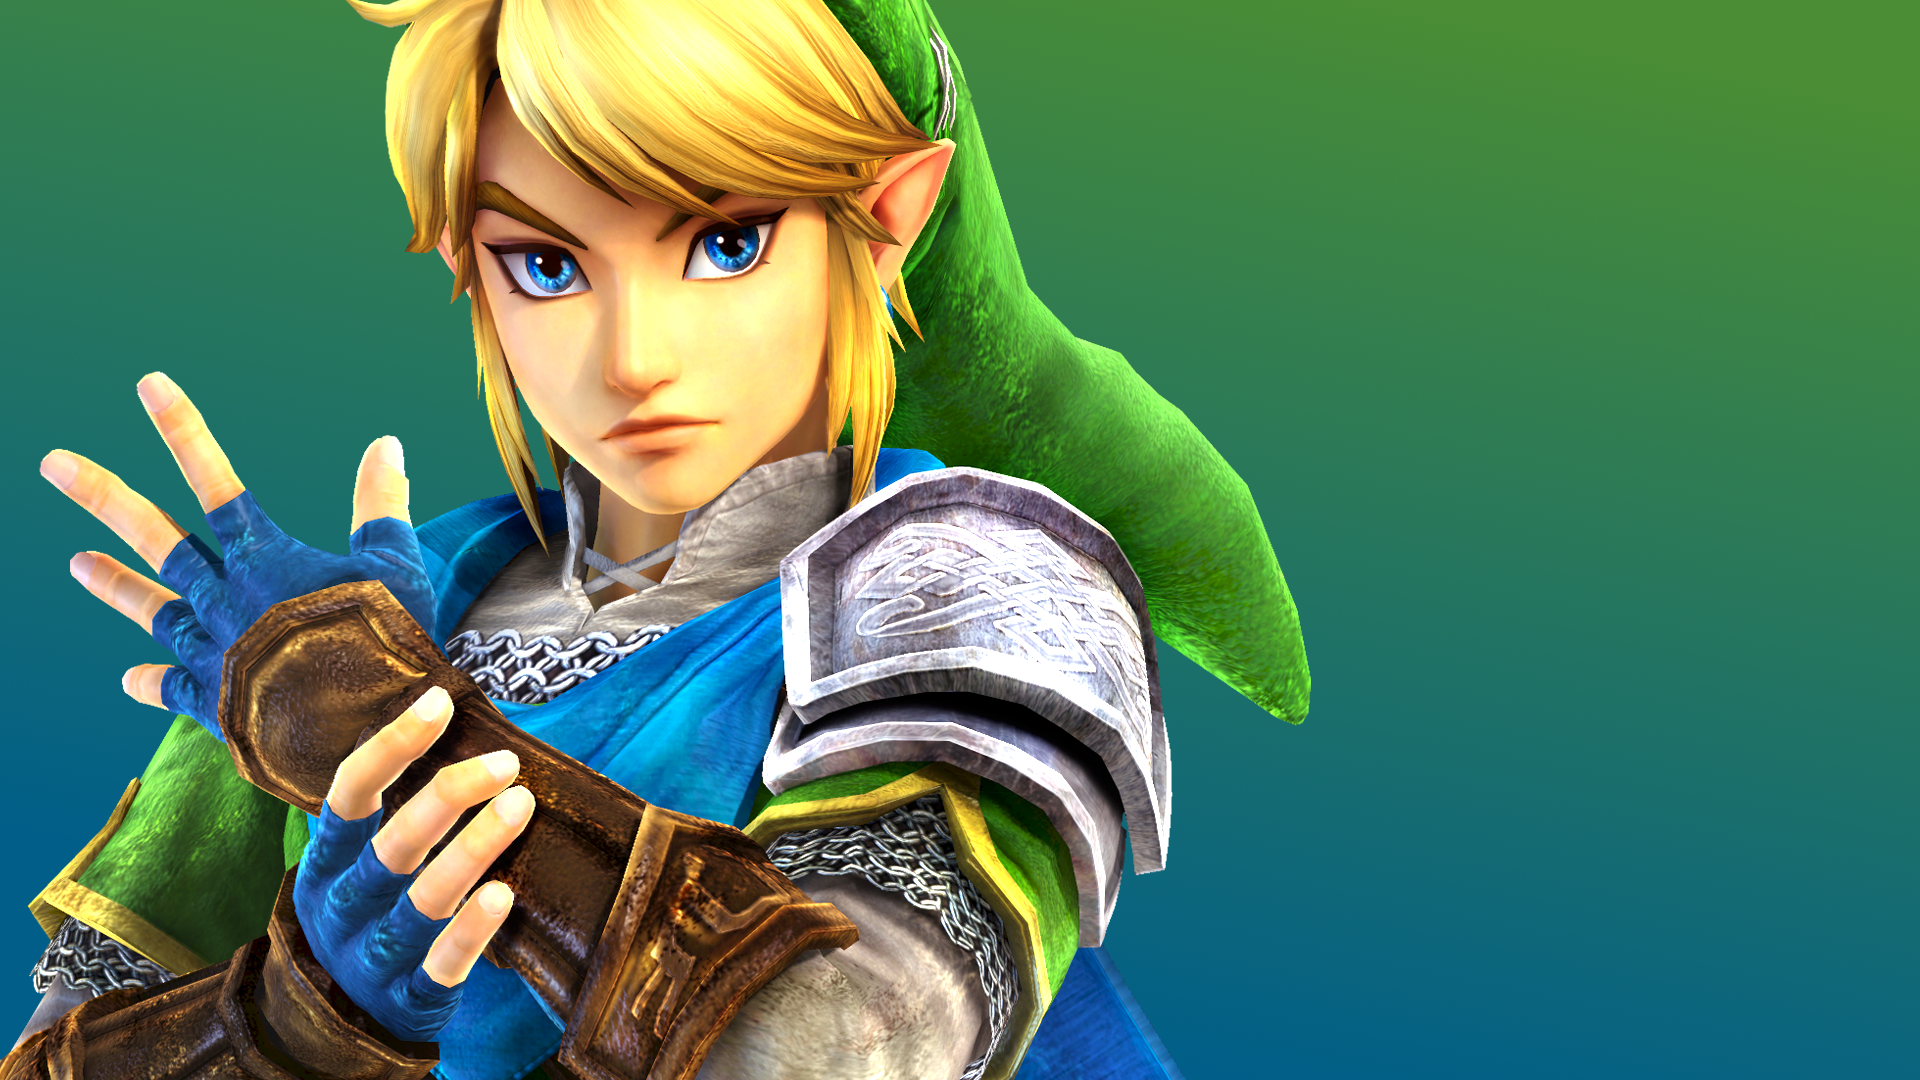 Link Hyrule Warriors Wallpaper   Color by MachRiderZ 1920x1080